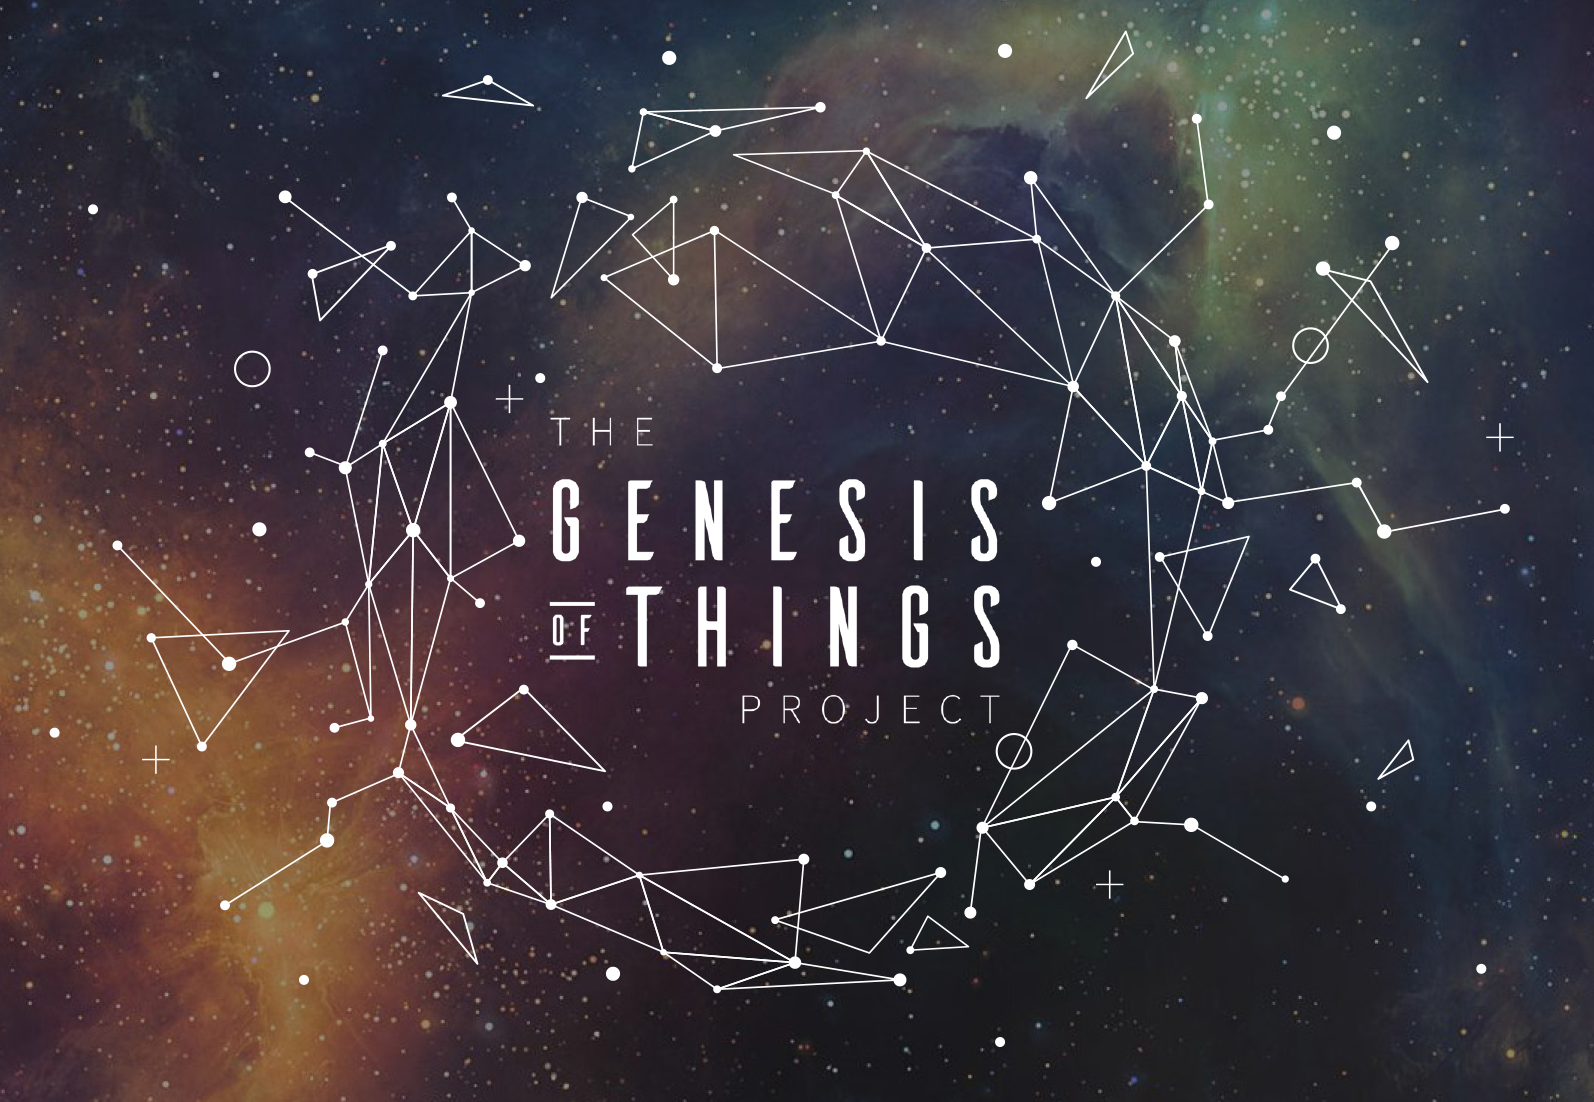 The Genesis of Things Project